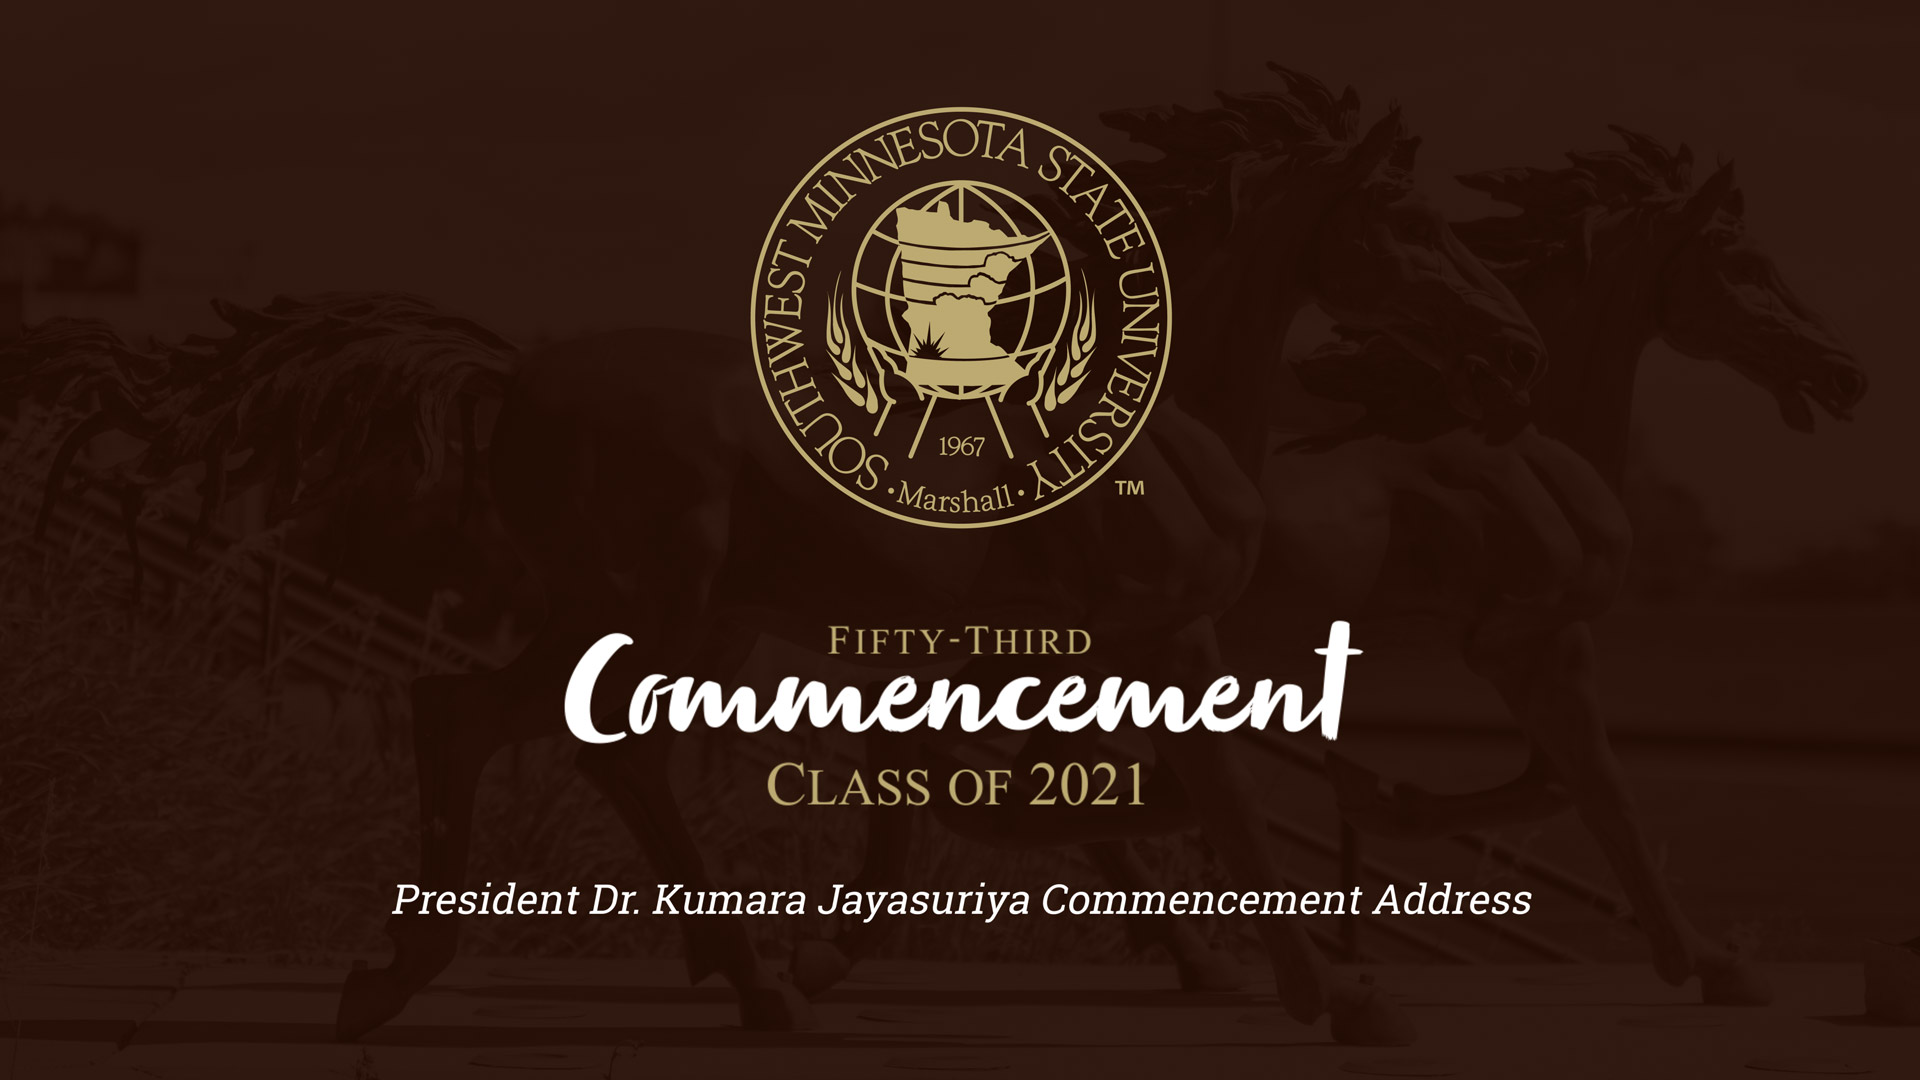 President Kumara Jayasuriya Commencement Address: Class of 2021